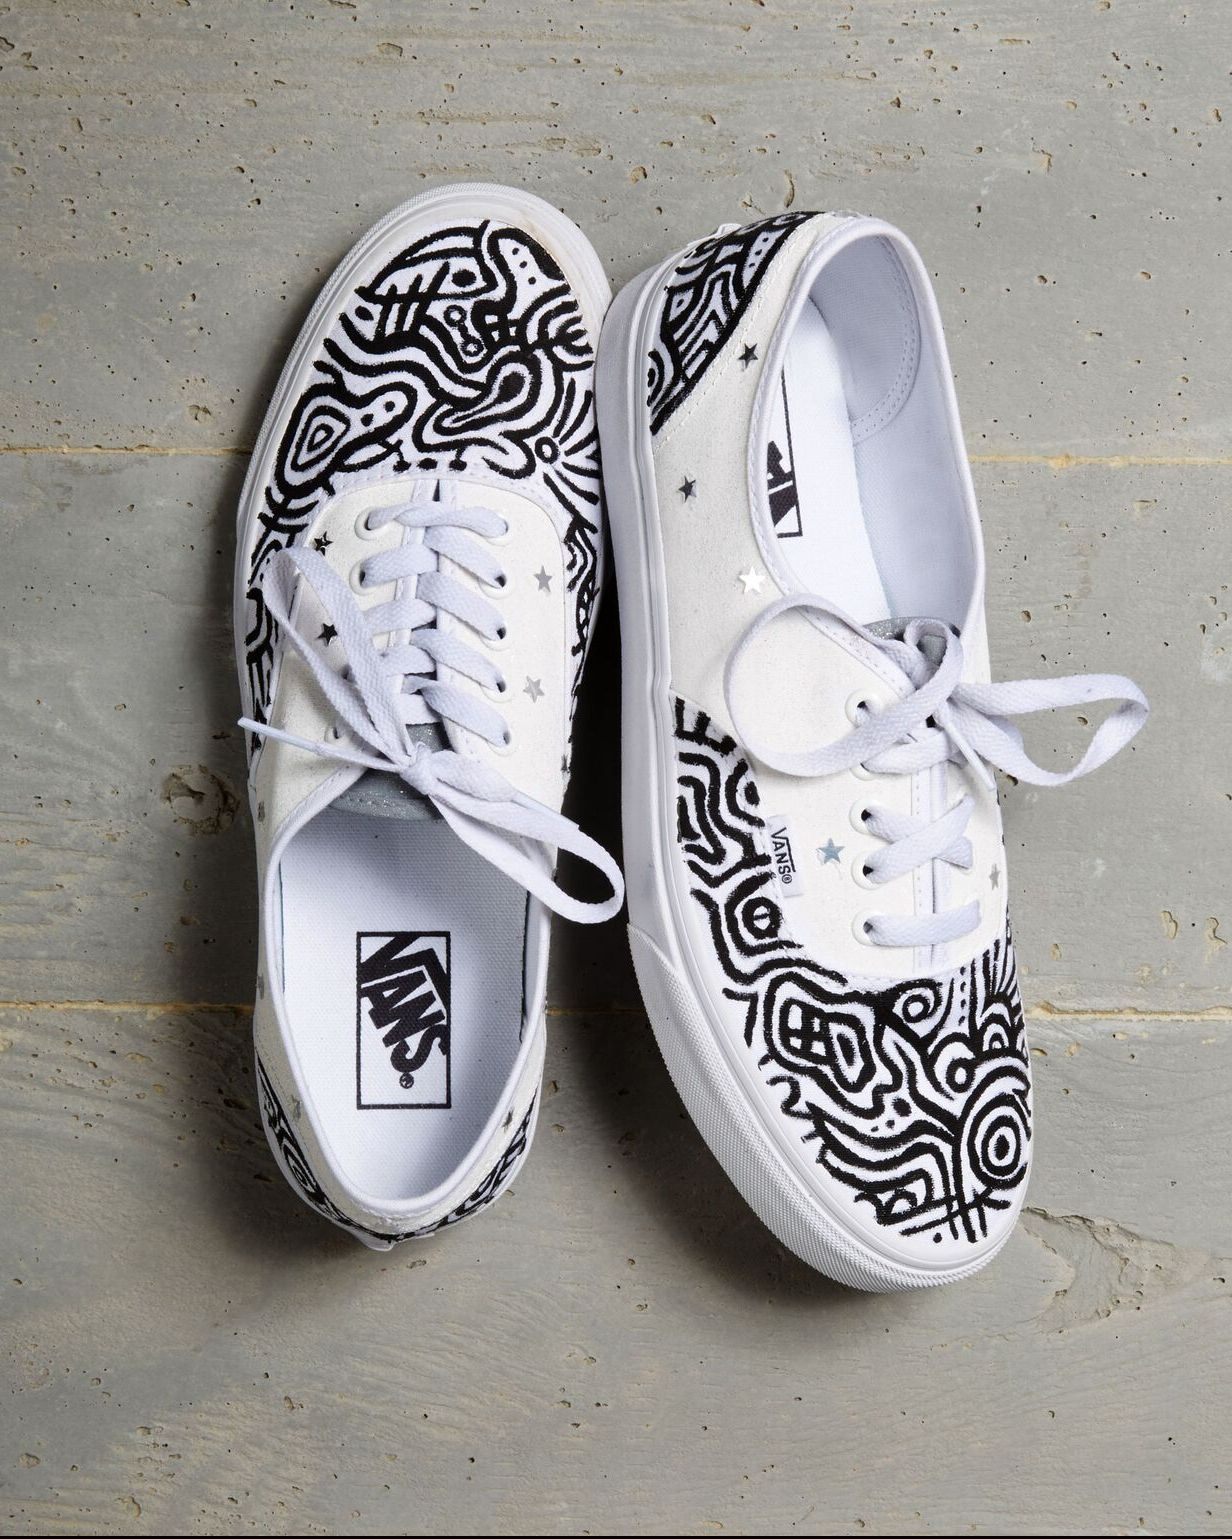 3f88852622d2 Shoes by 2018 Vans Custom Culture ambassador